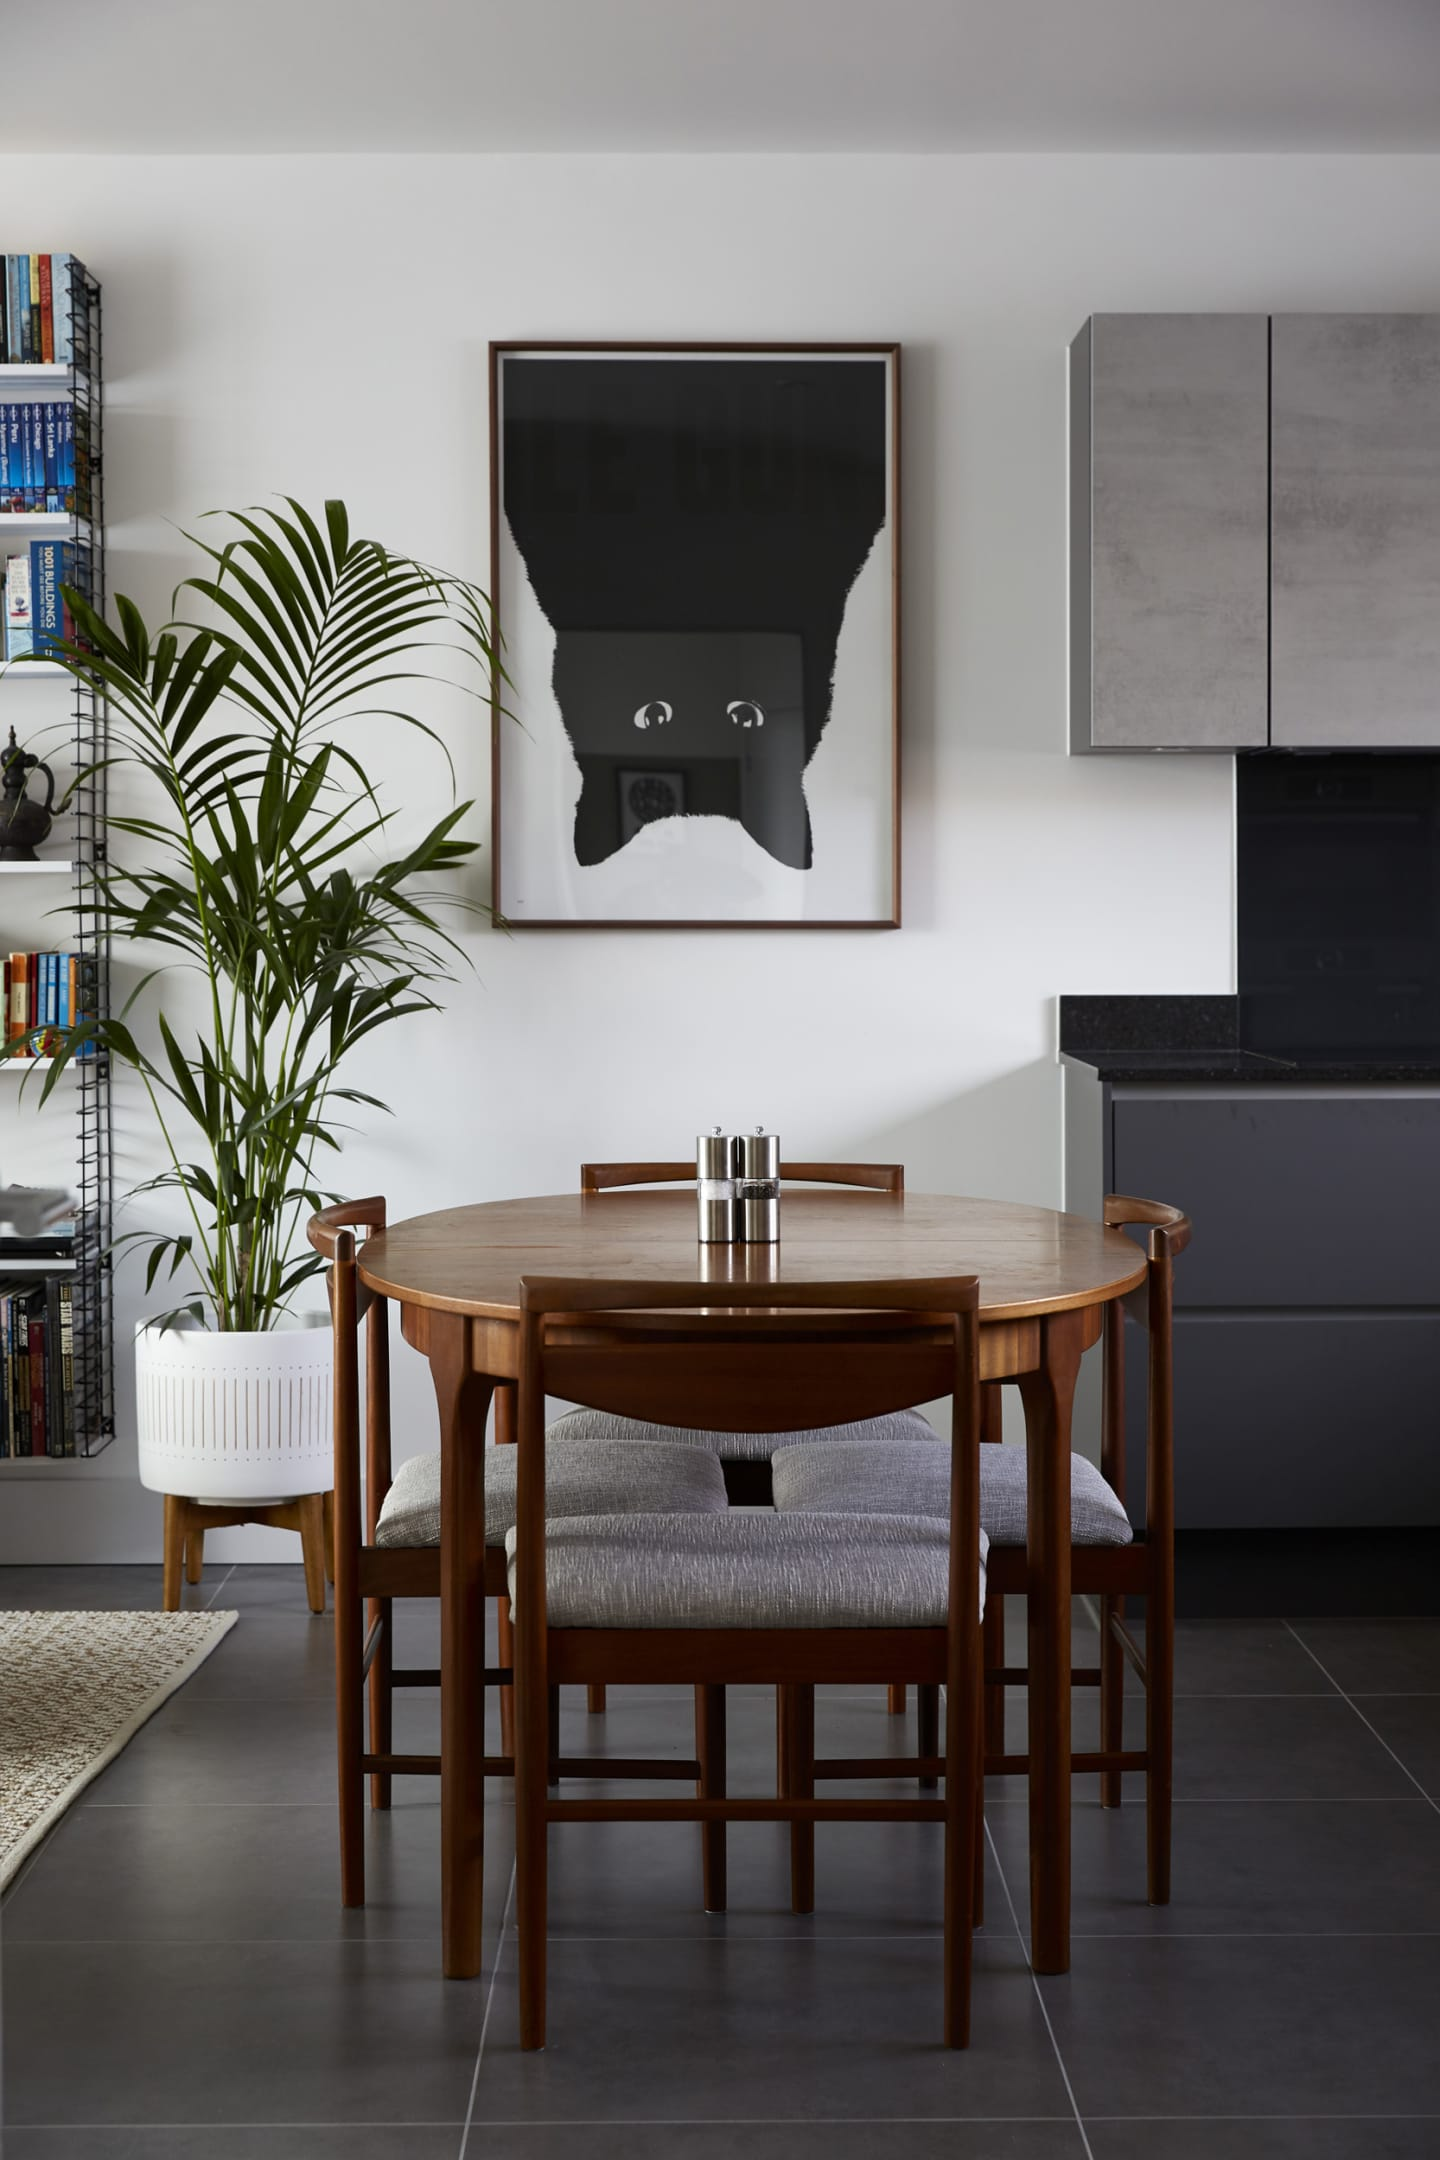 Living room with large cat print